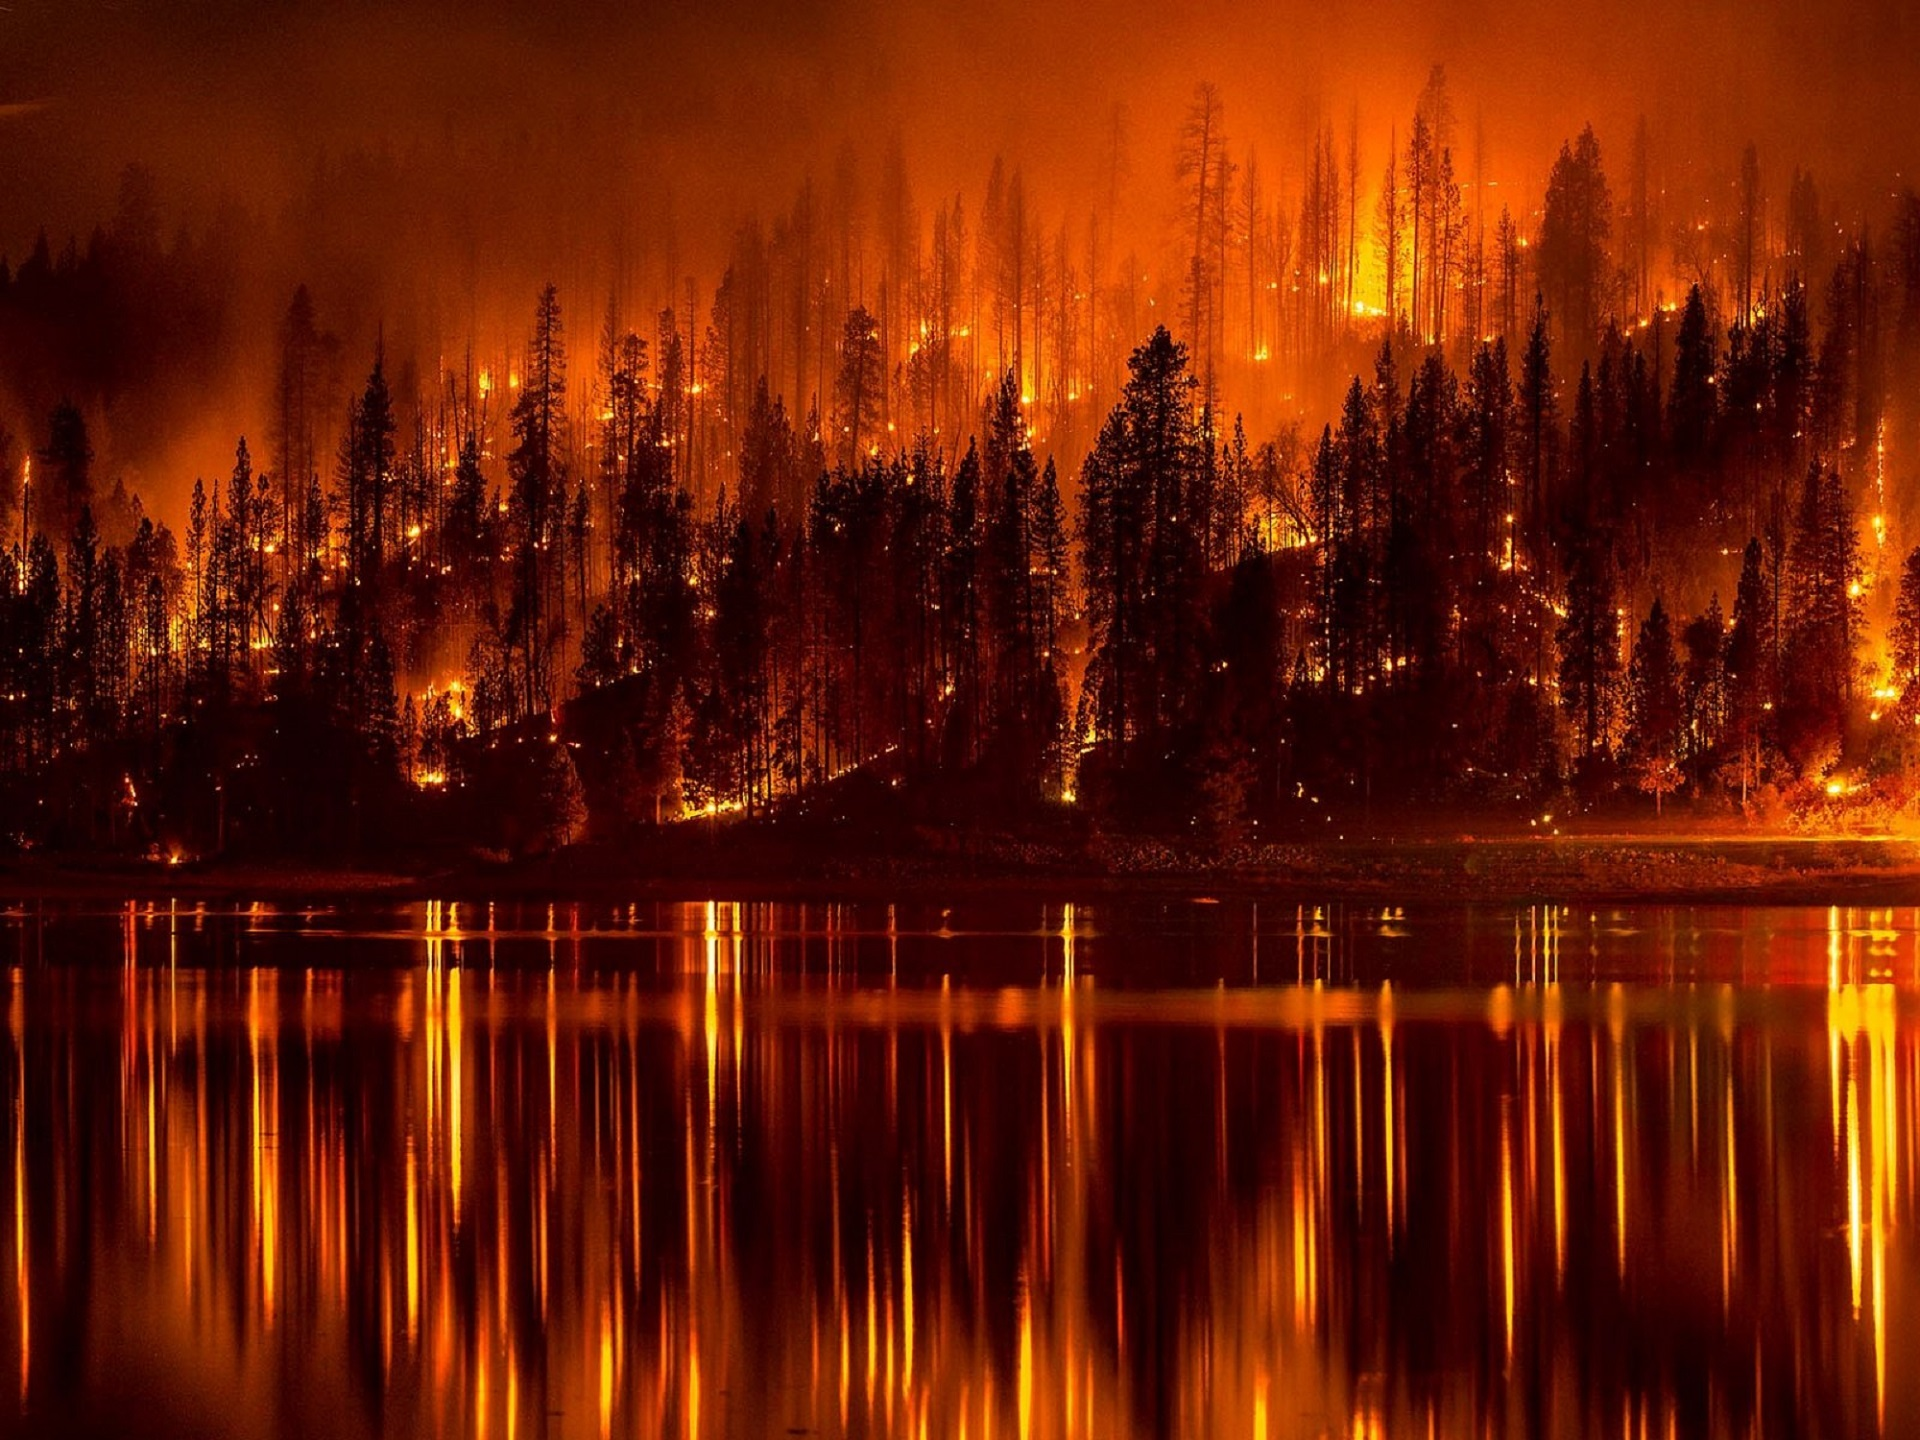 Image credit: Pixaby user 'skeeze' https://pixabay.com/en/forest-fire-flames-burning-water-991479/